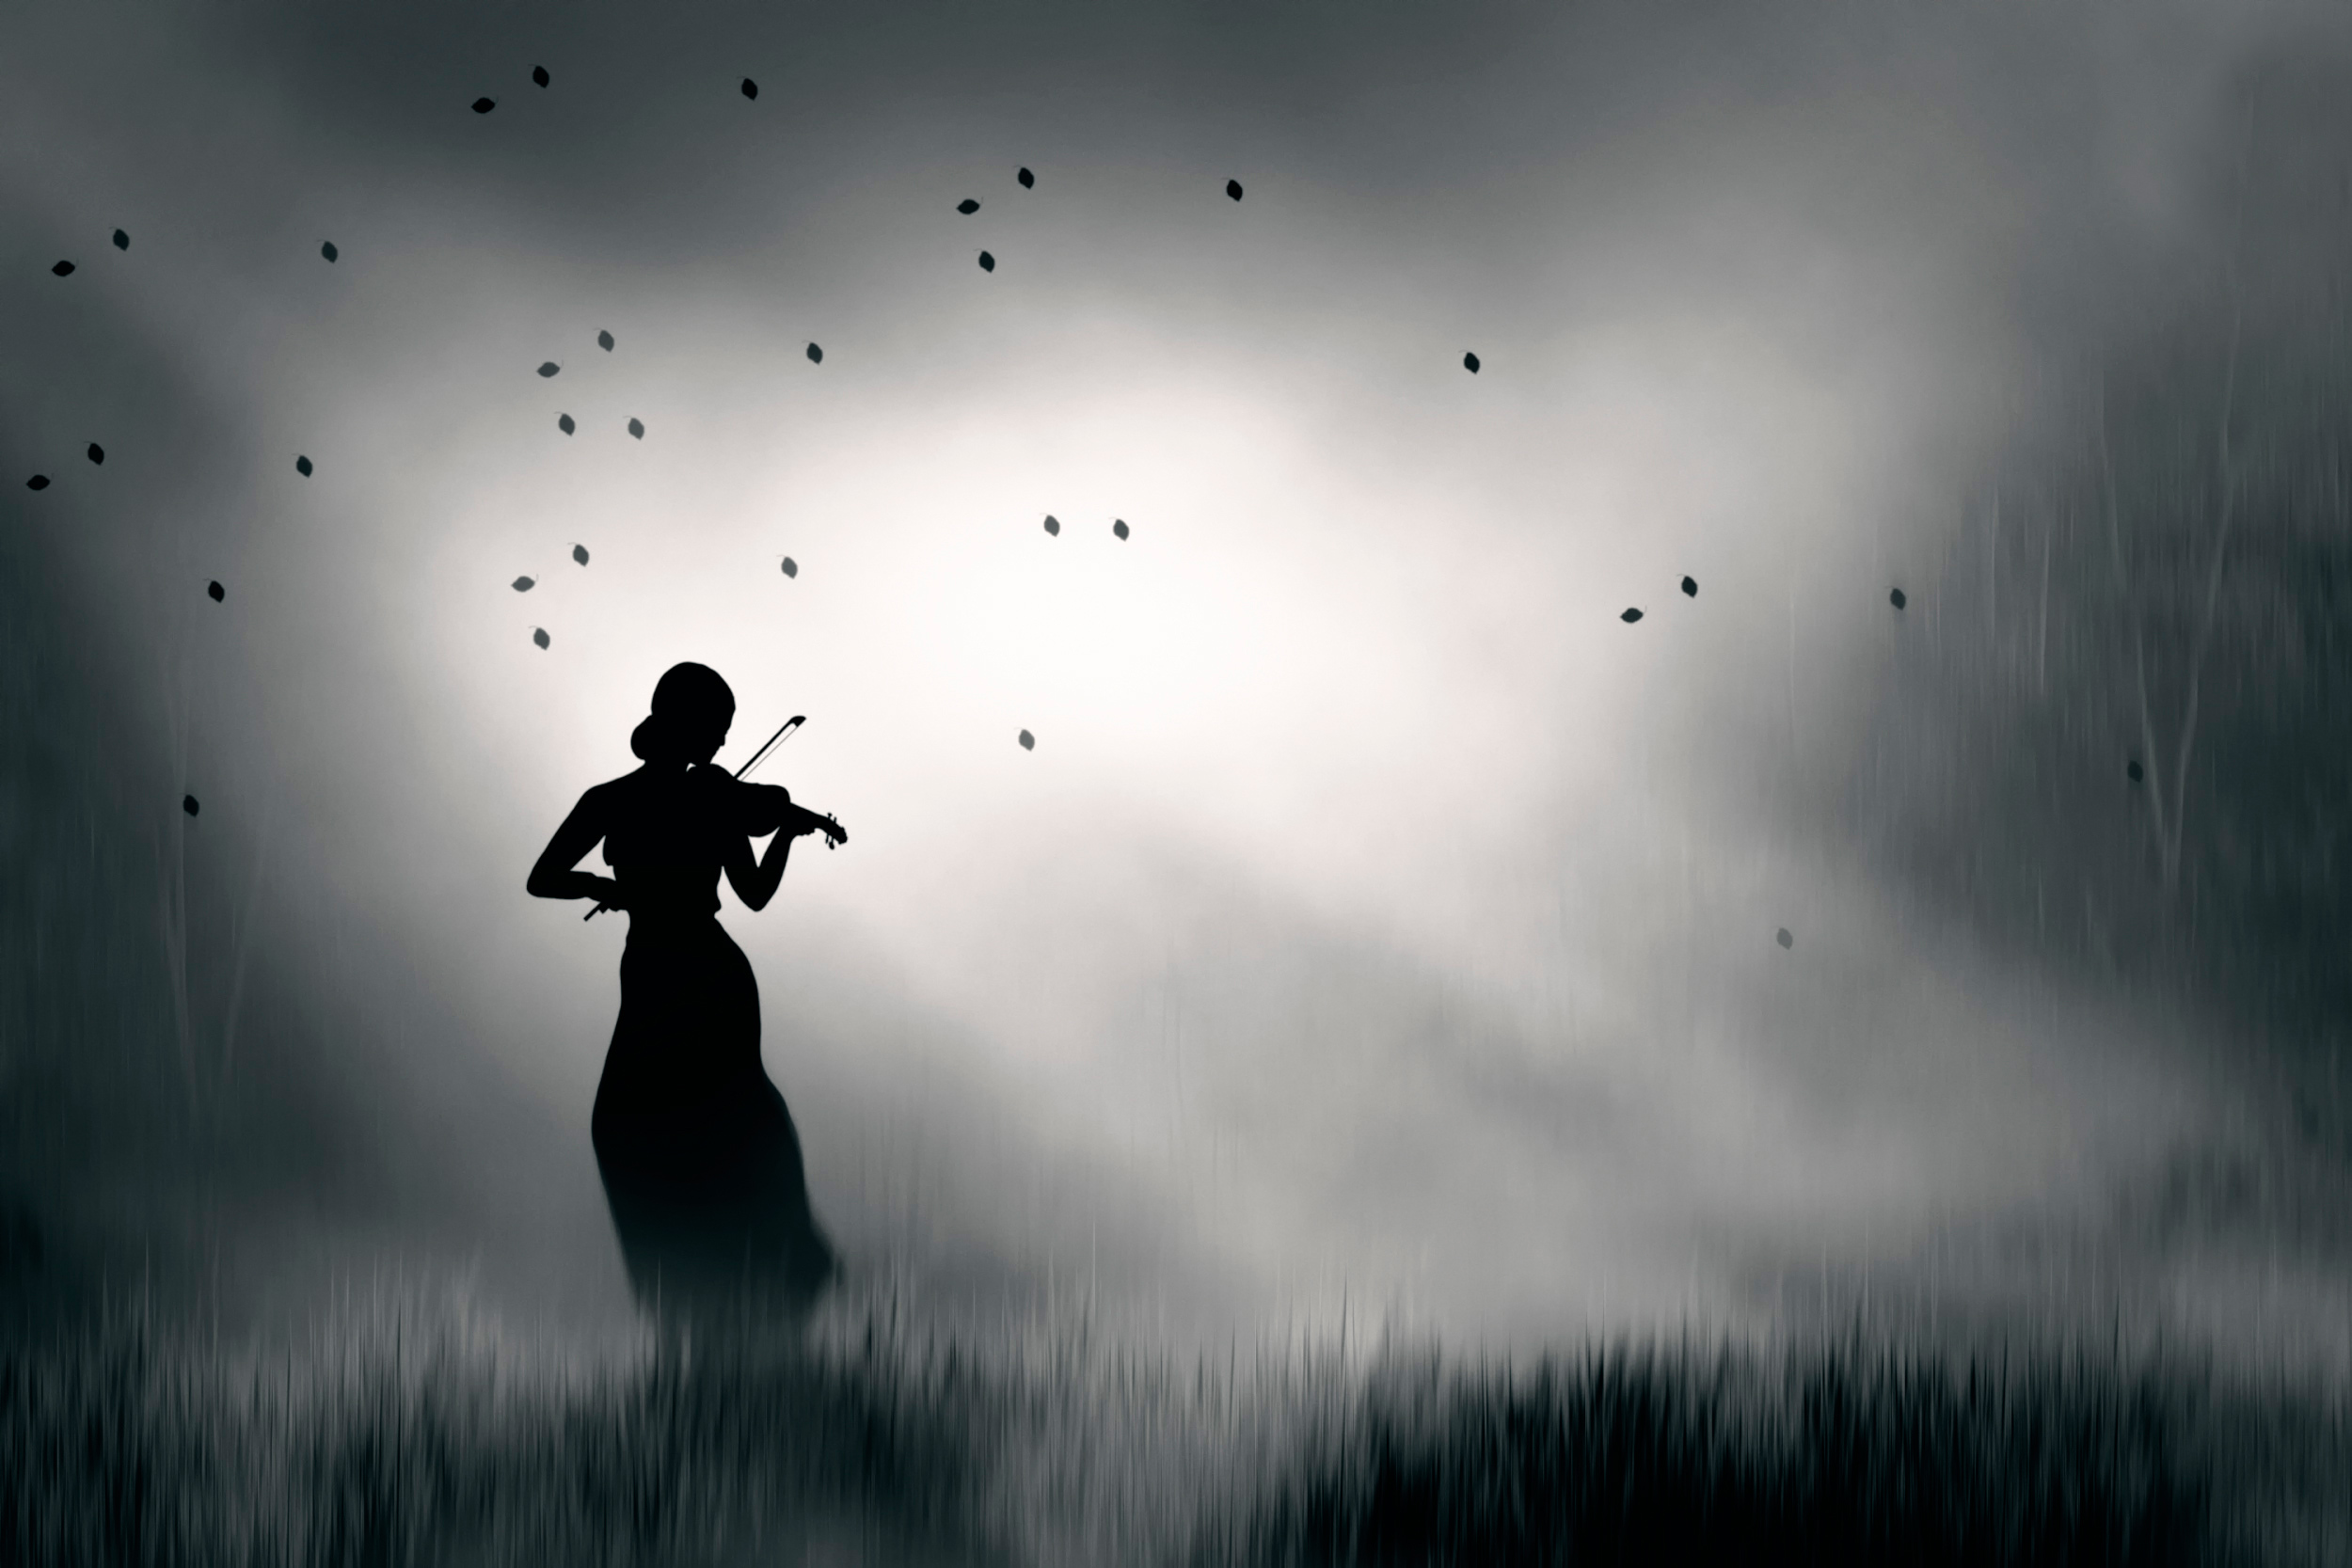 Download Wallpaper Silhouette Violinist I Play My Lonely Song Section Music In Resolution 2500x1667